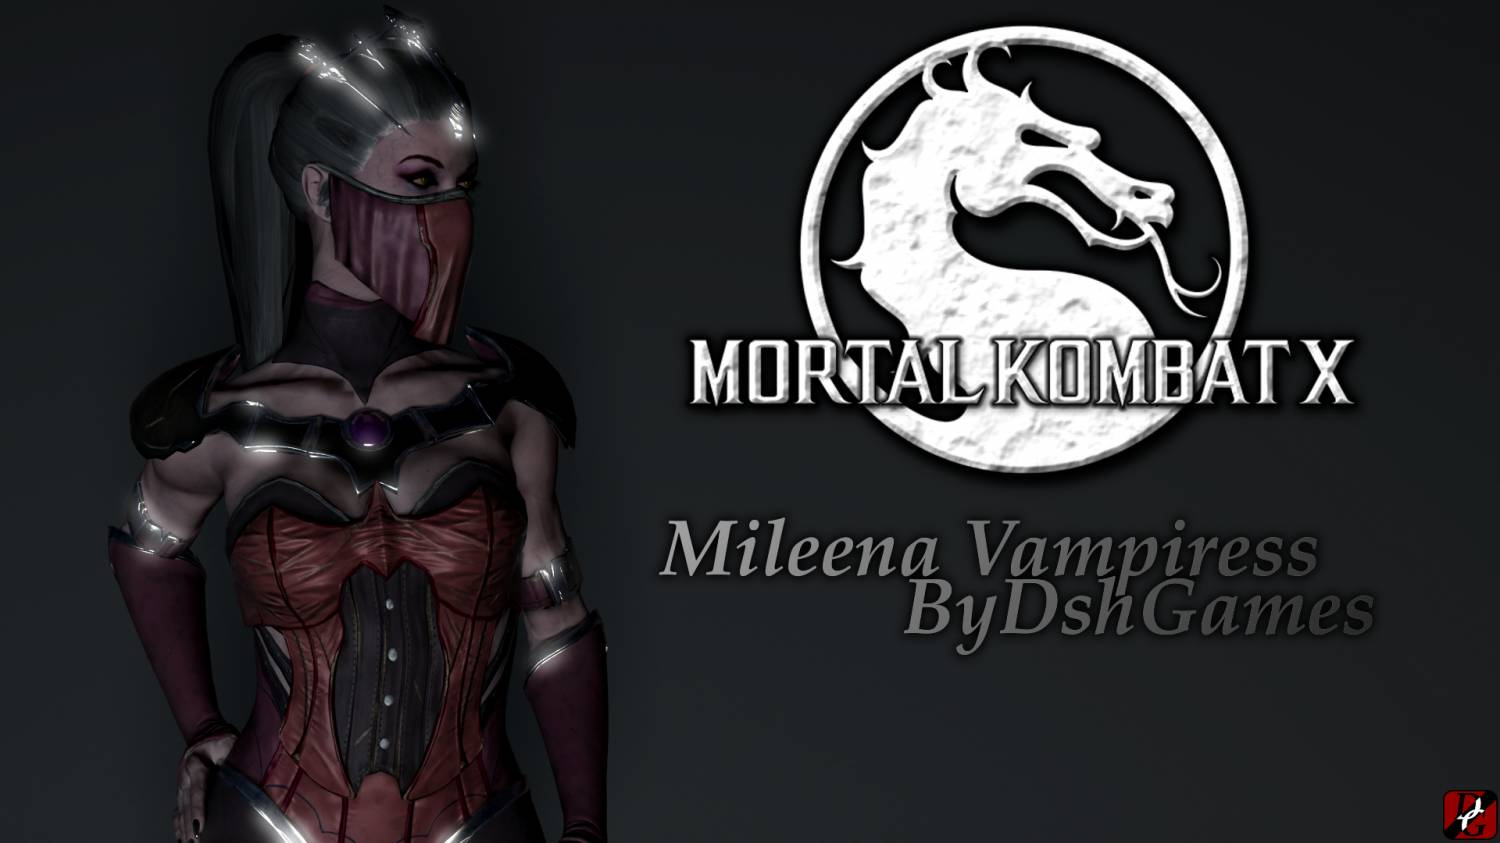 Mileena Vampiress for GTA 0SA